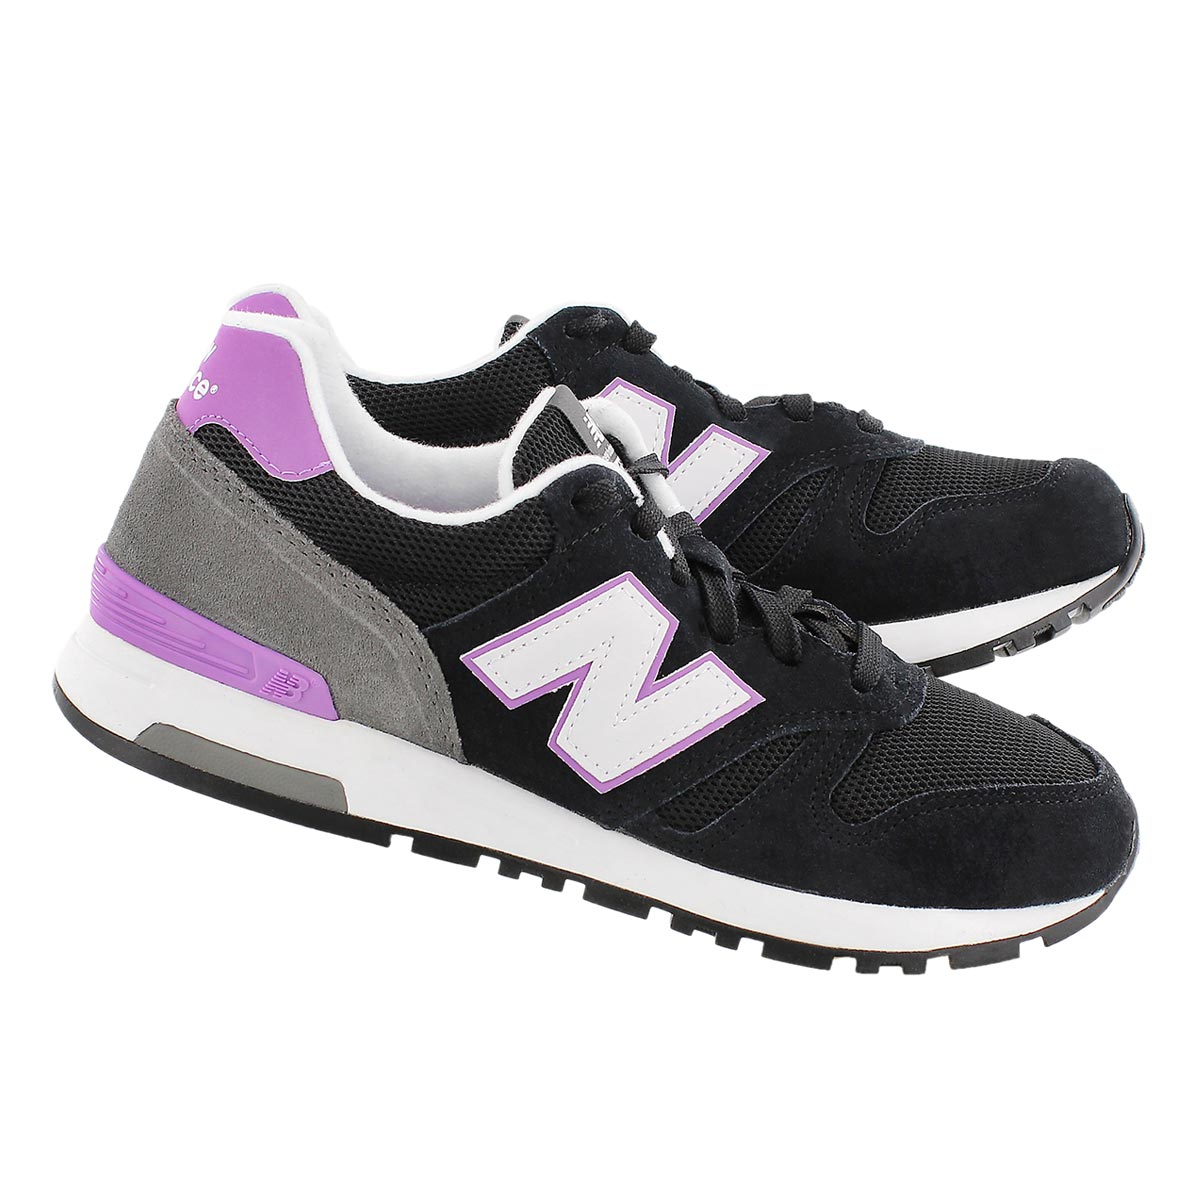 Lds 565 blk/purple lace up sneaker